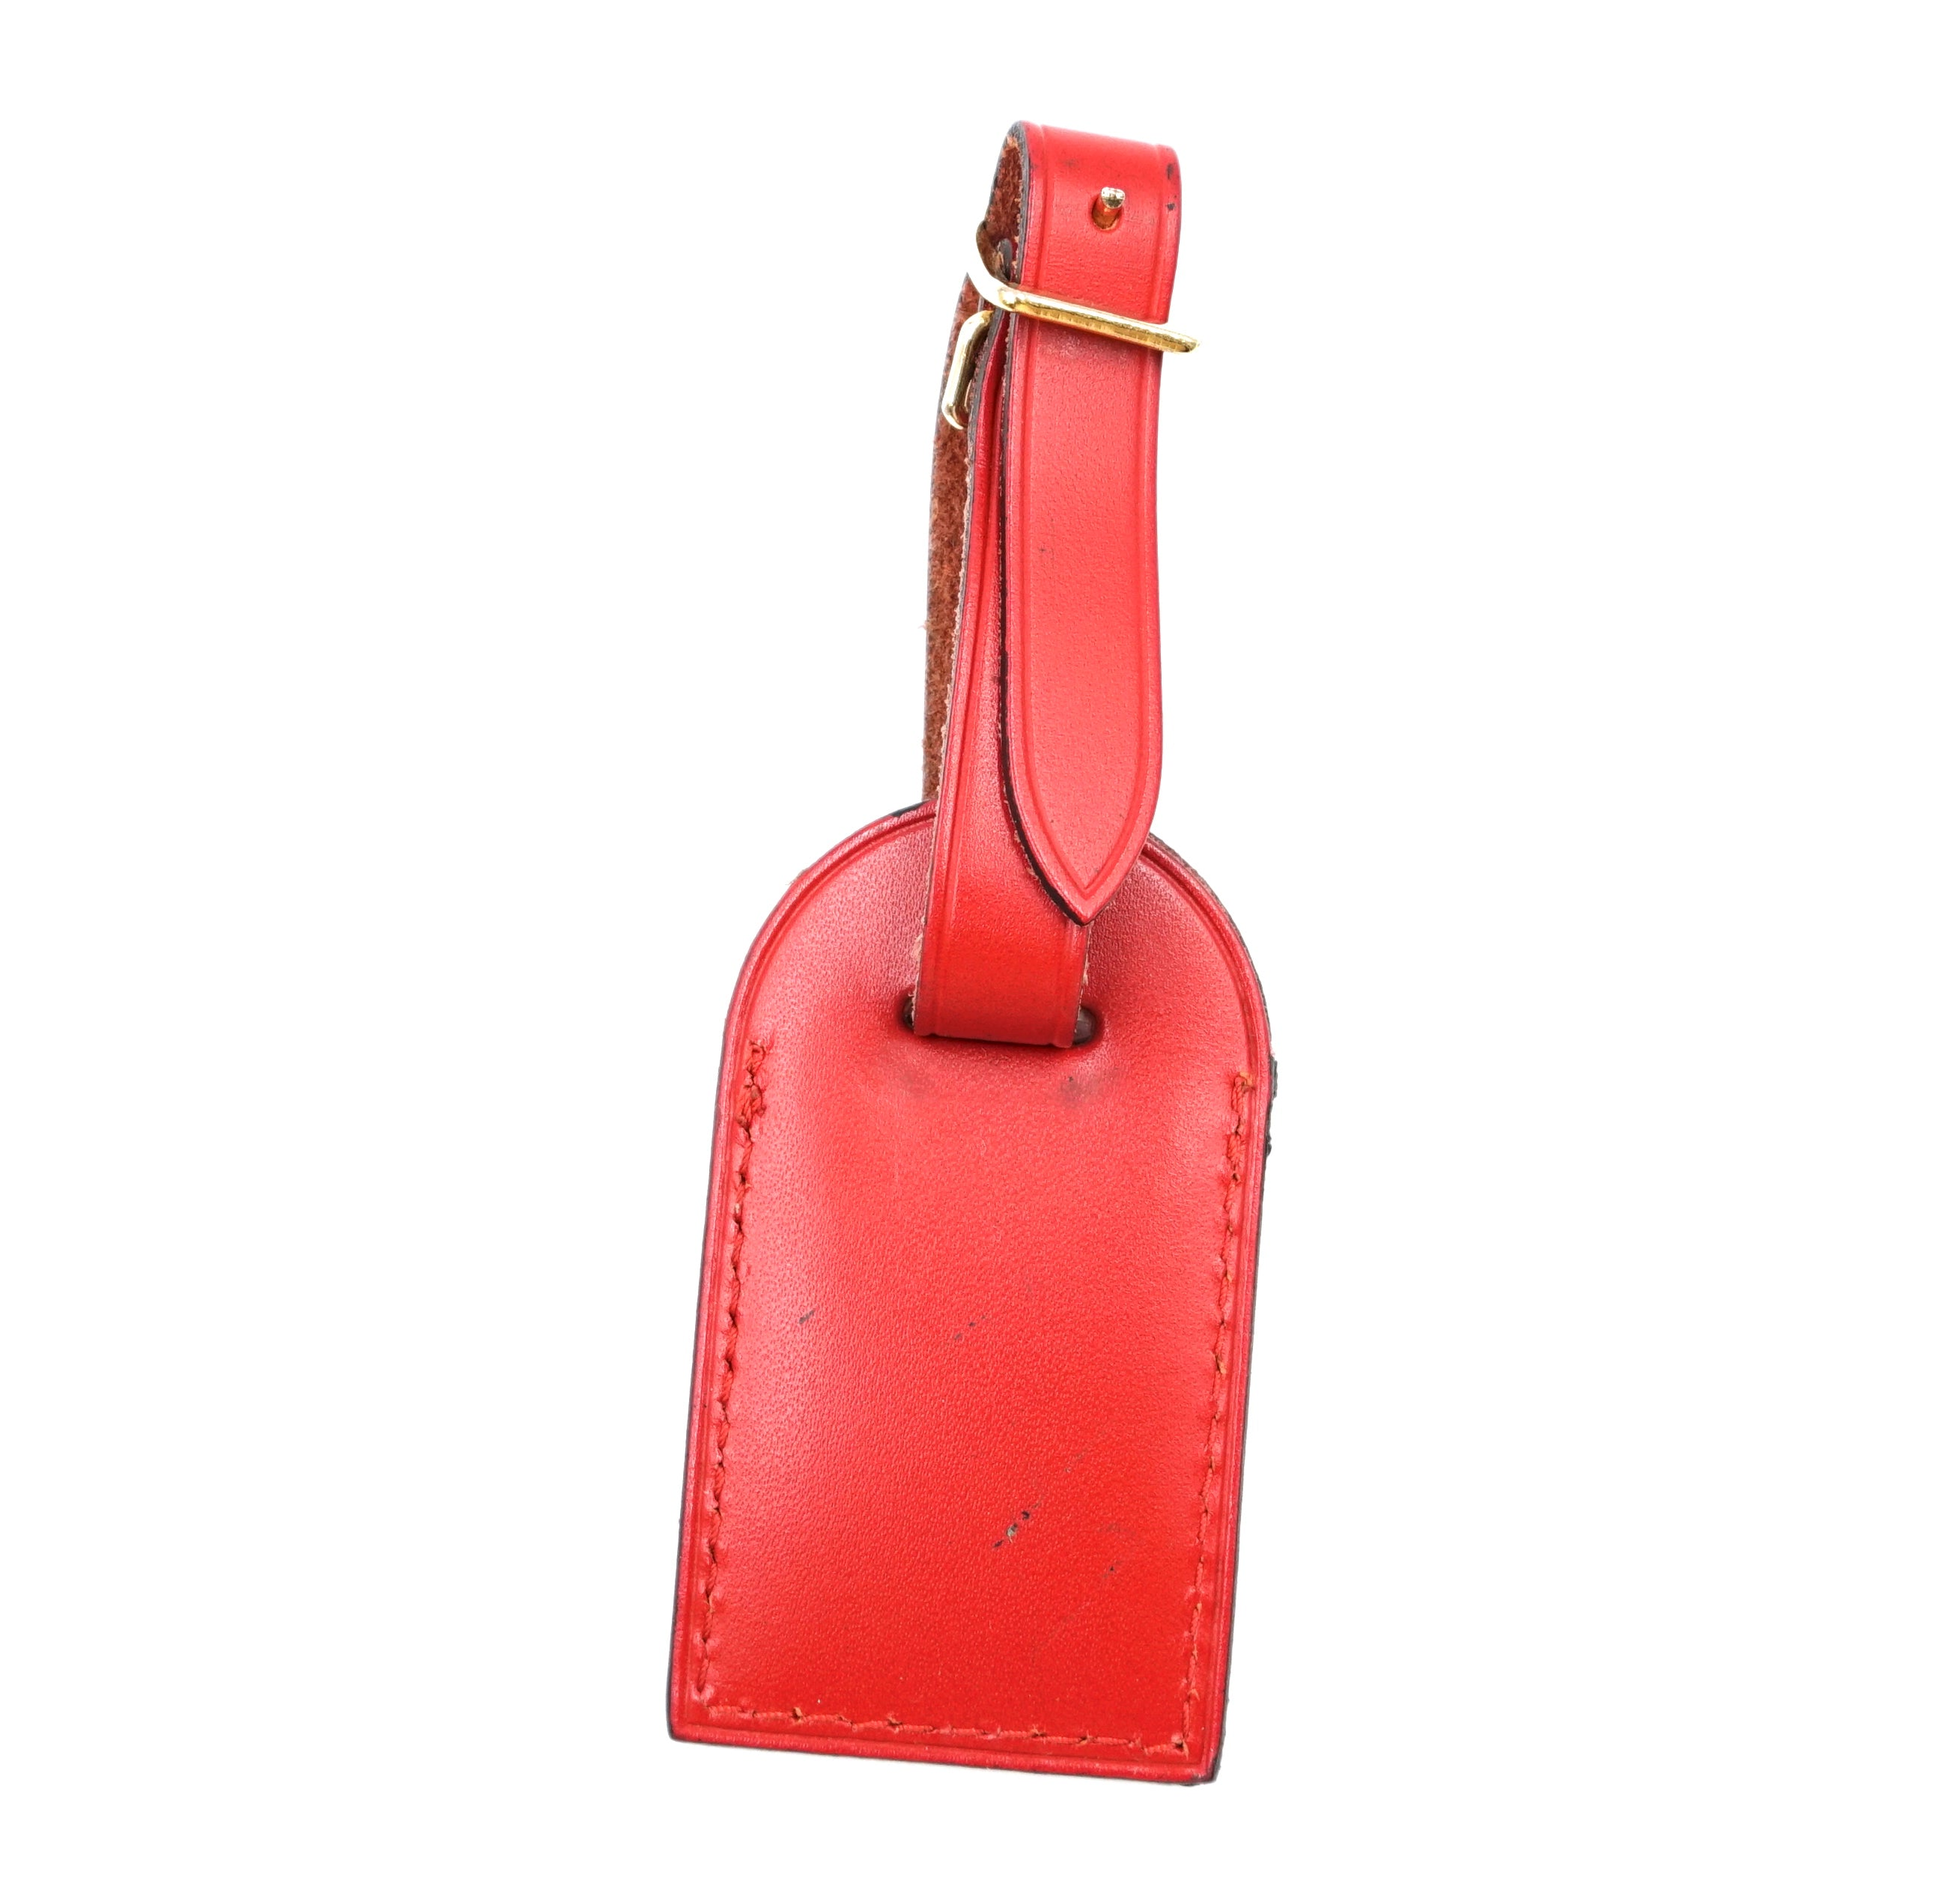 Louis Vuitton Red Small Smooth Calf Leather Luggage Tag